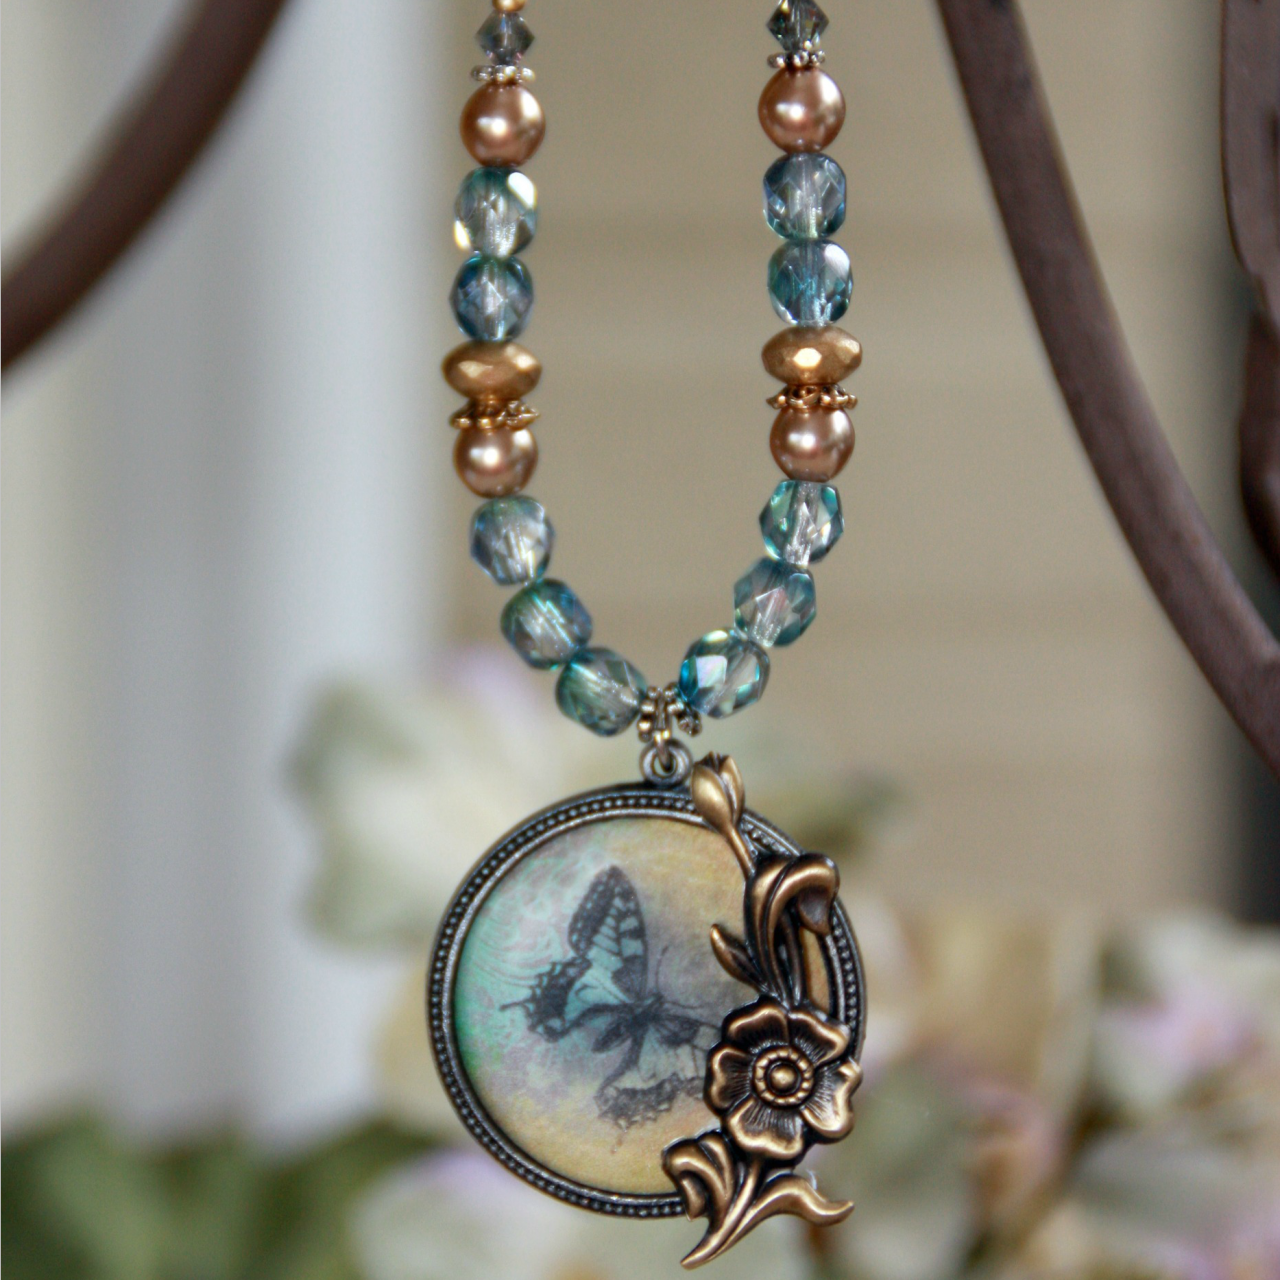 ART-213 Butterfly and Floral ART Collection Necklace